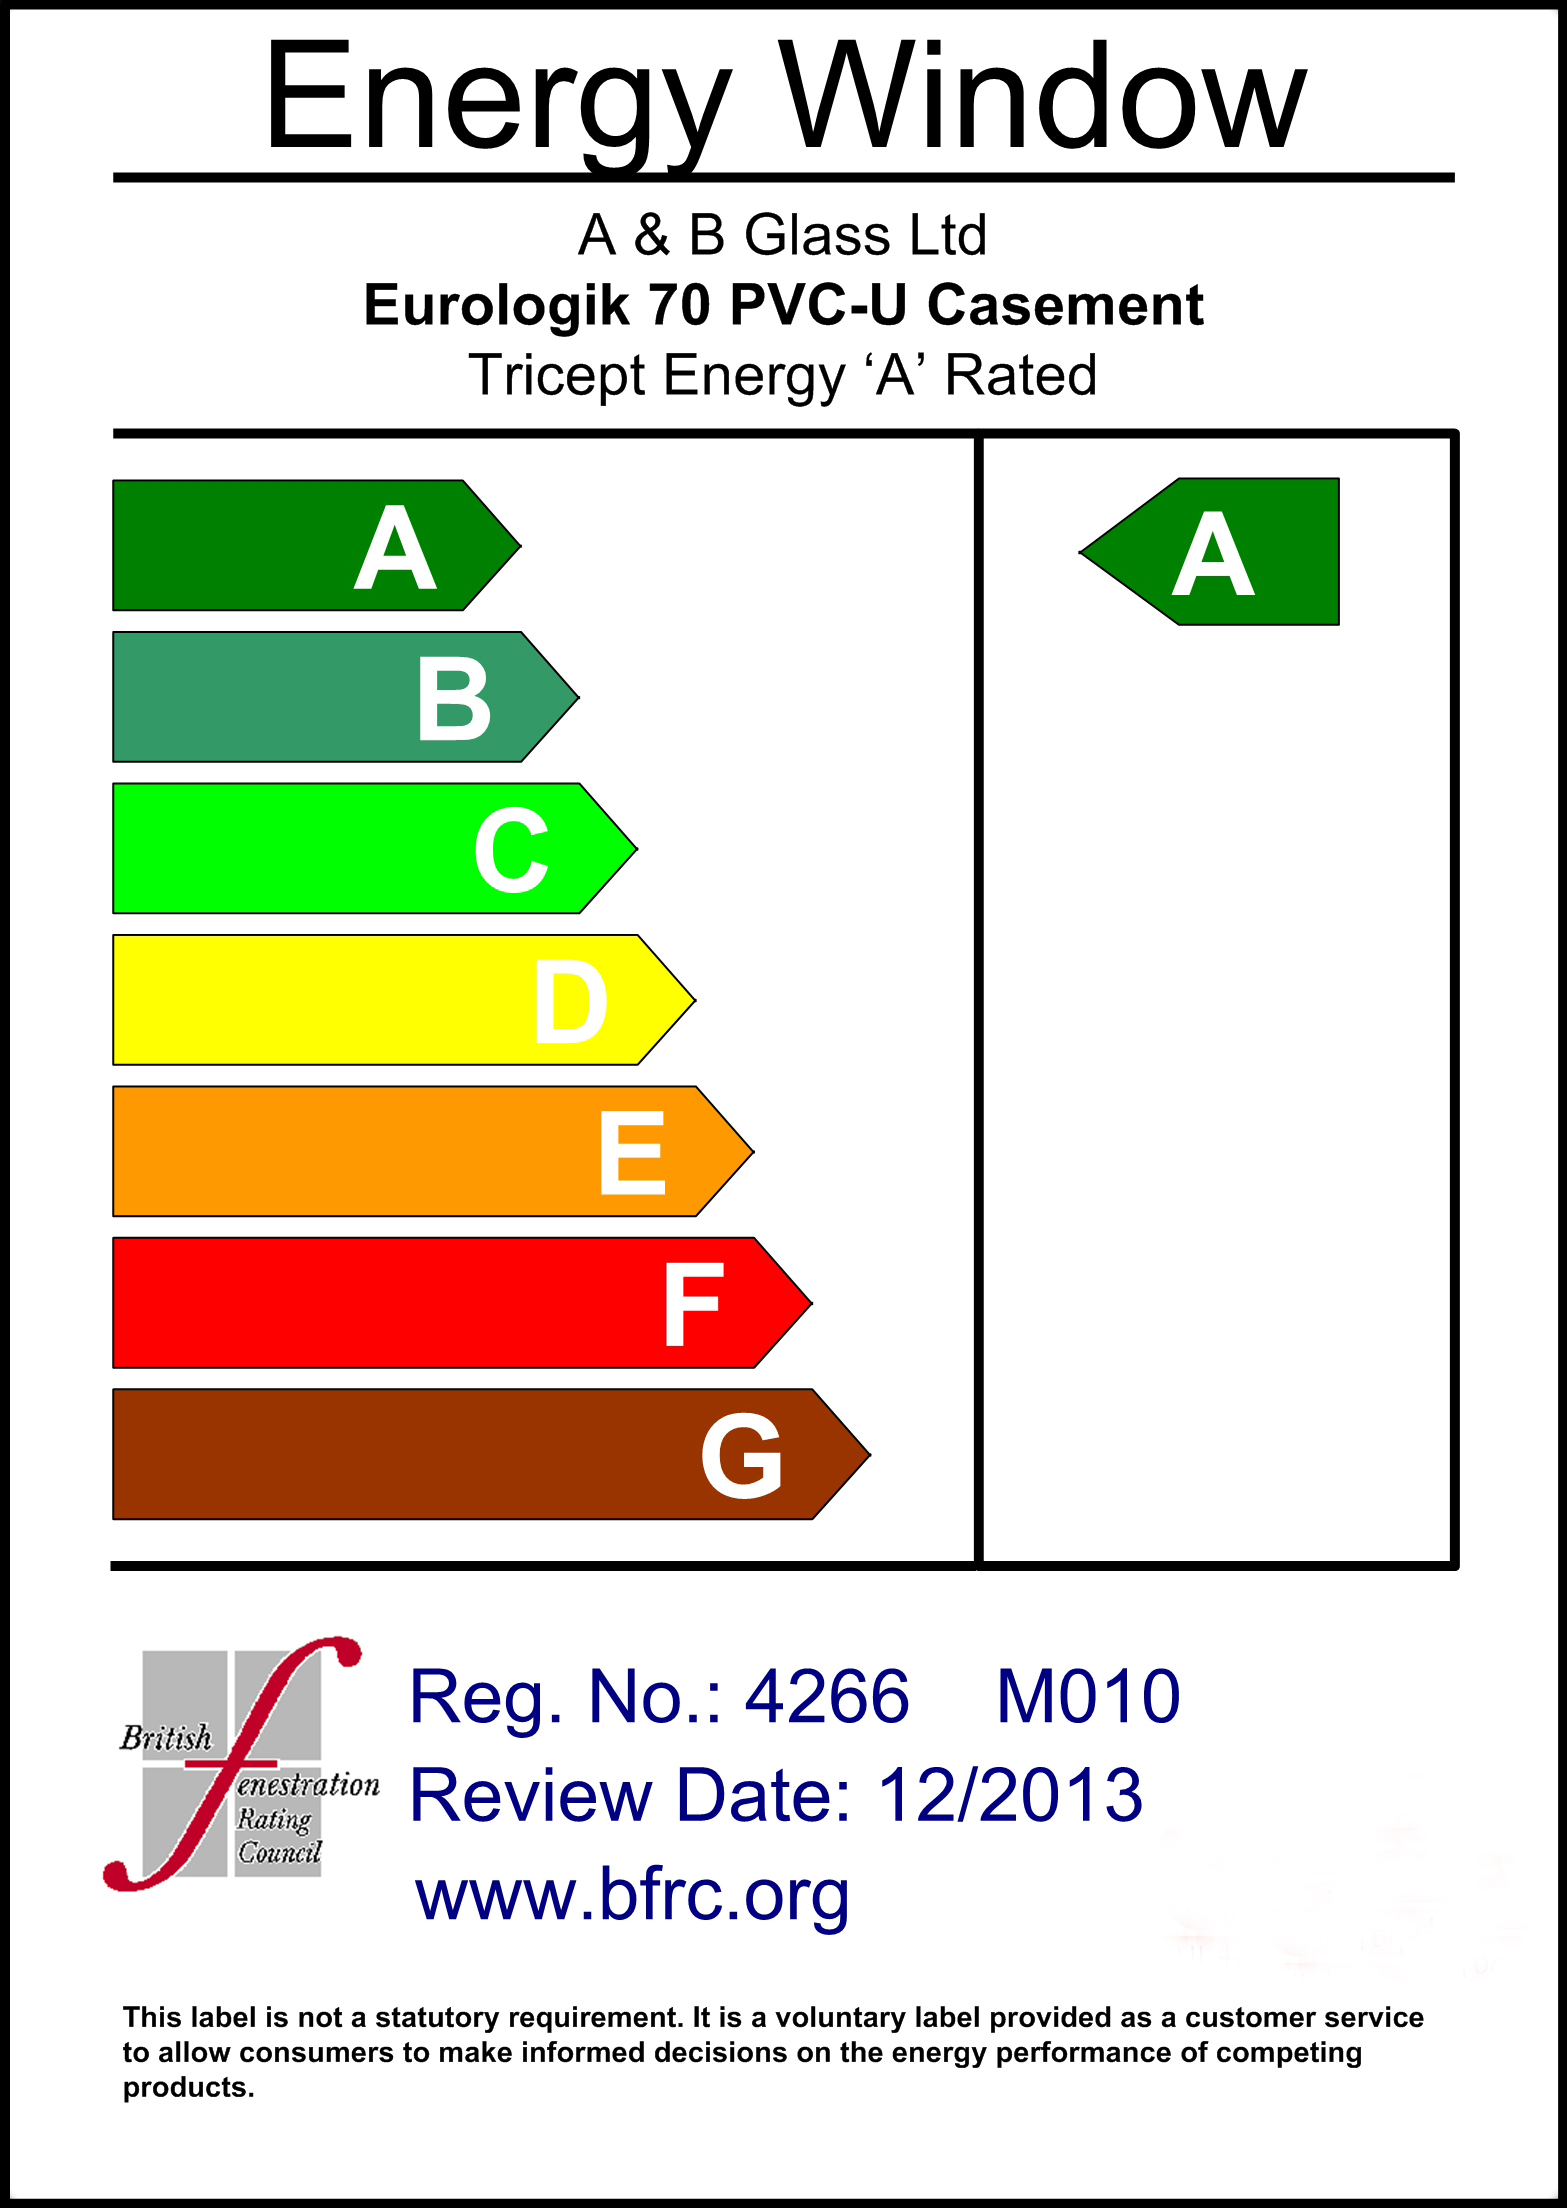 Image result for A+14 Windows Energy Rating Image